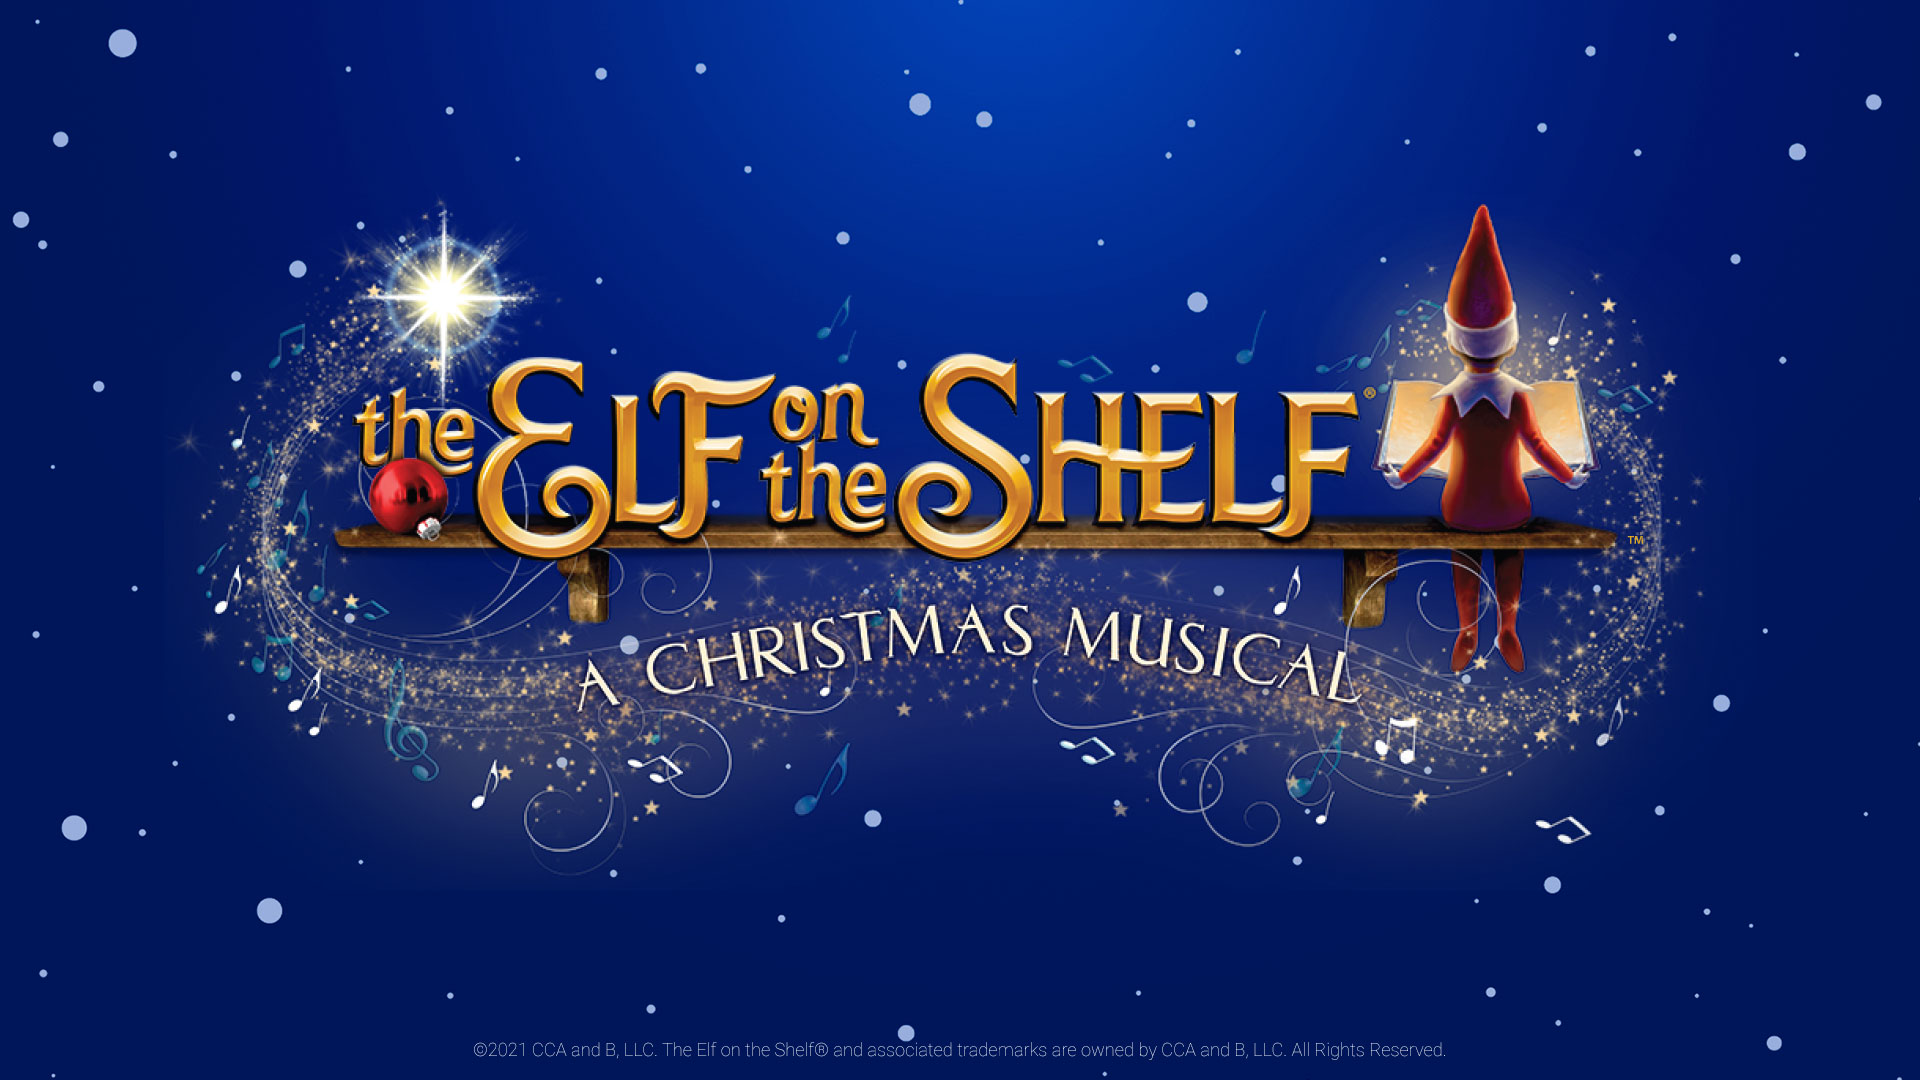 elf on a shelf, holiday show, tysons, capital one hall, things to do, capital one center, family show